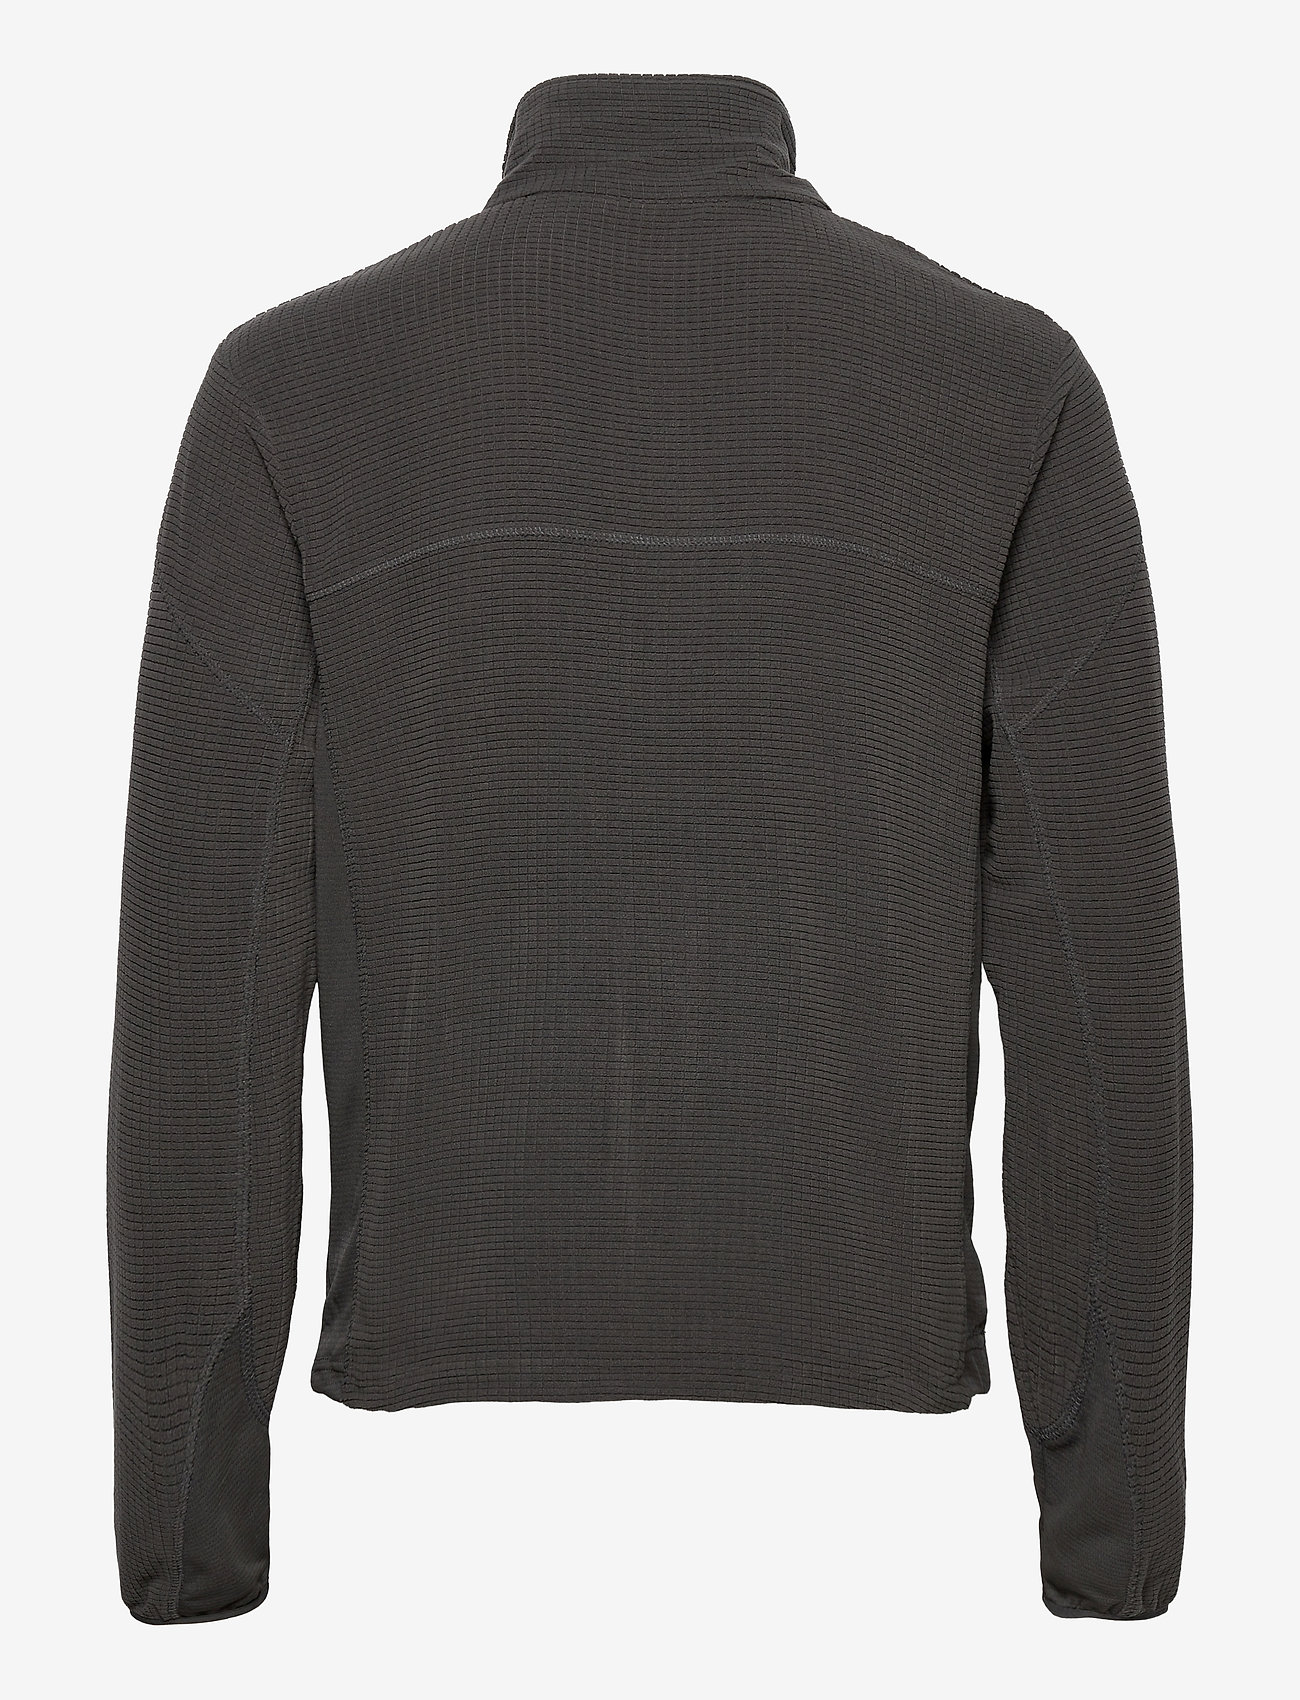 Skogstad - Åelva fleece jacket - basic-sweatshirts - dark grey - 1